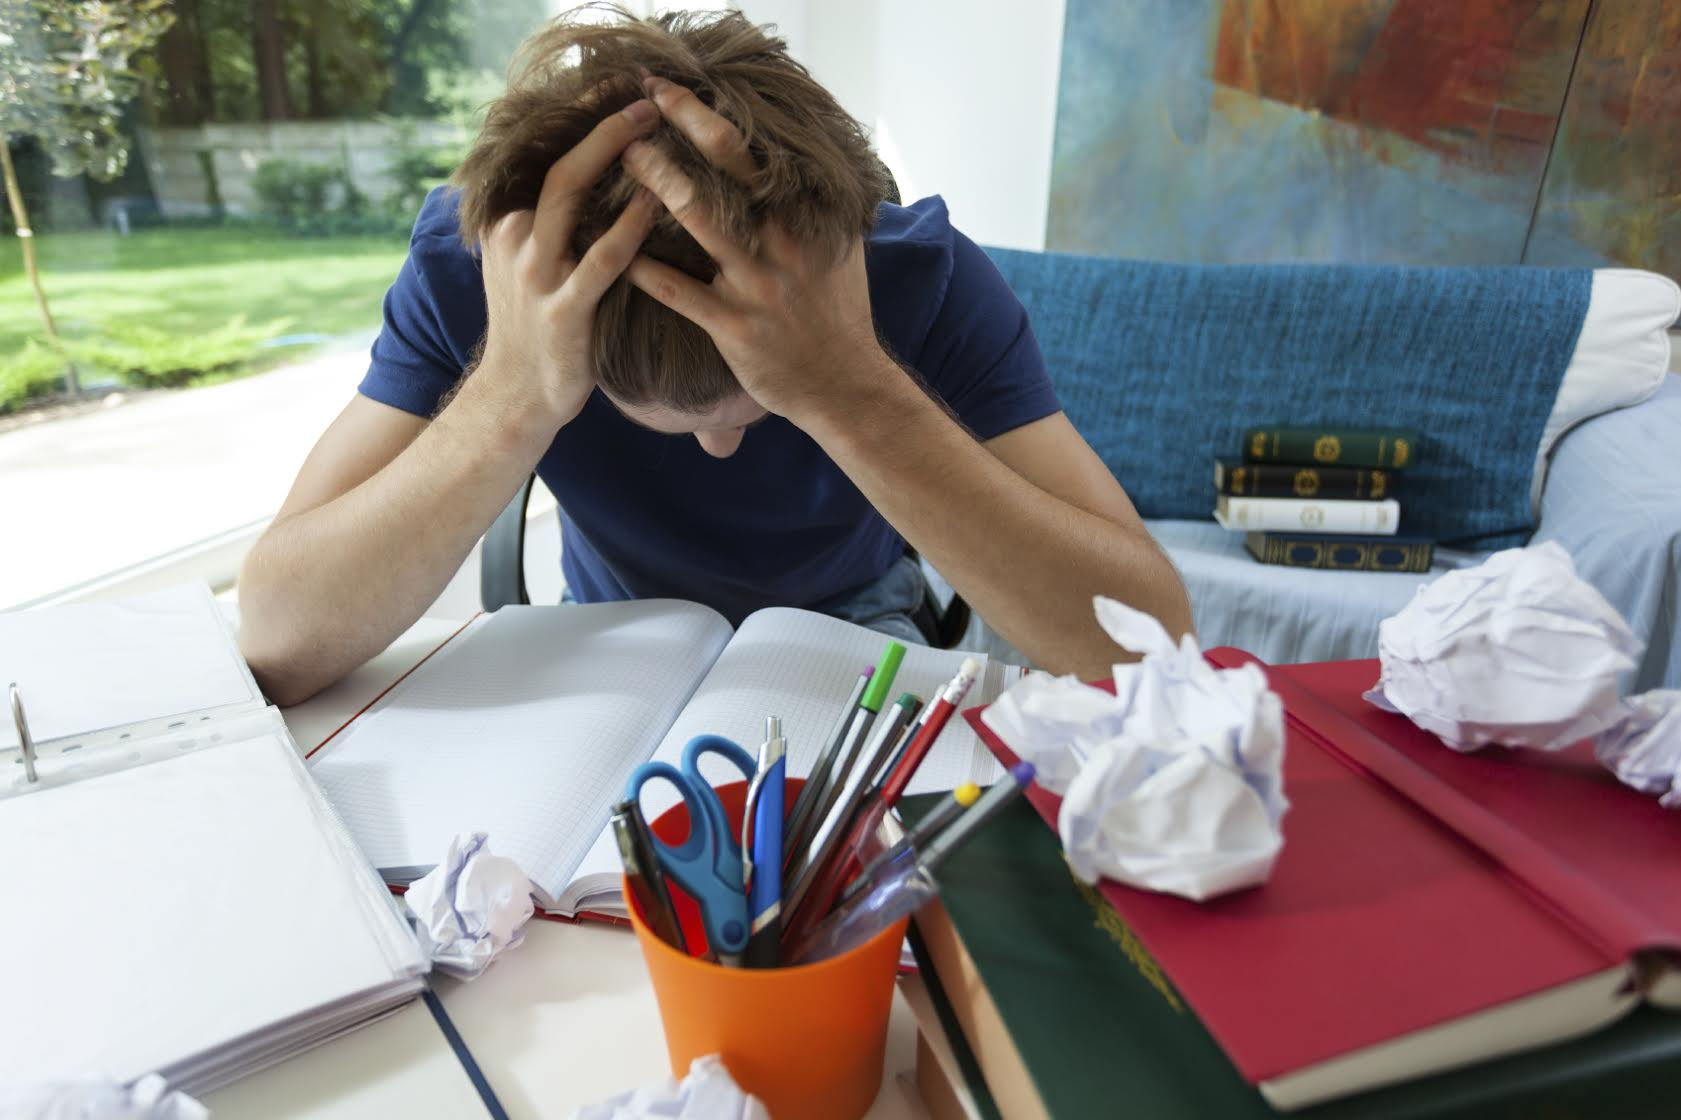 Exhausted student in blue t-shirt learning at home